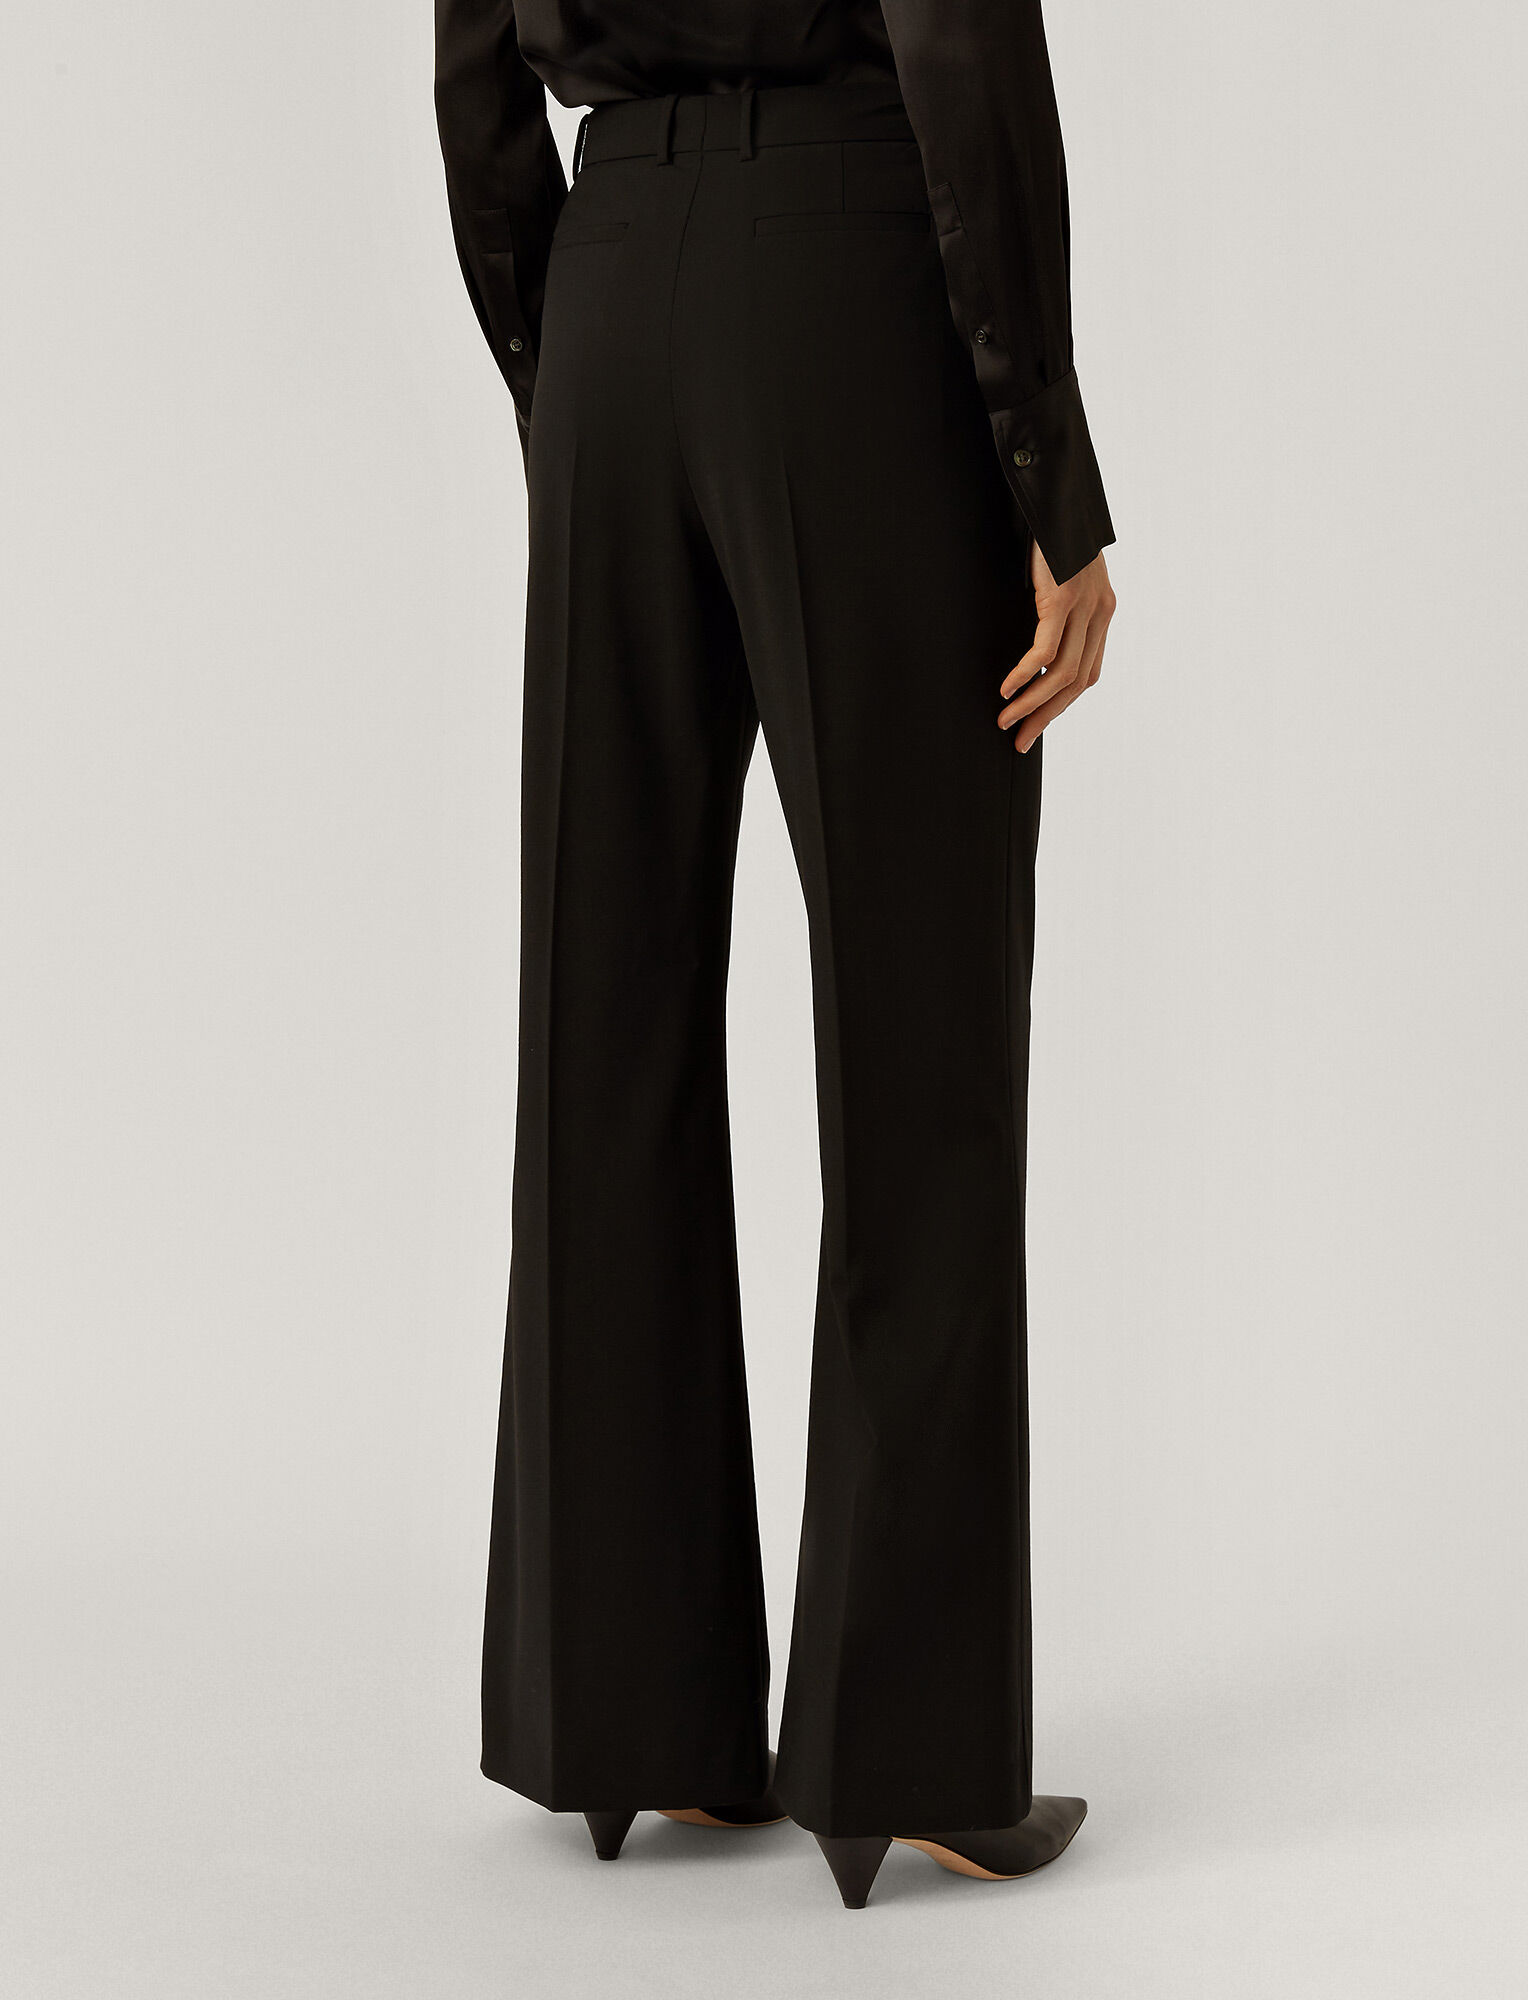 Joseph, Tambi Light Wool Trousers, in Black